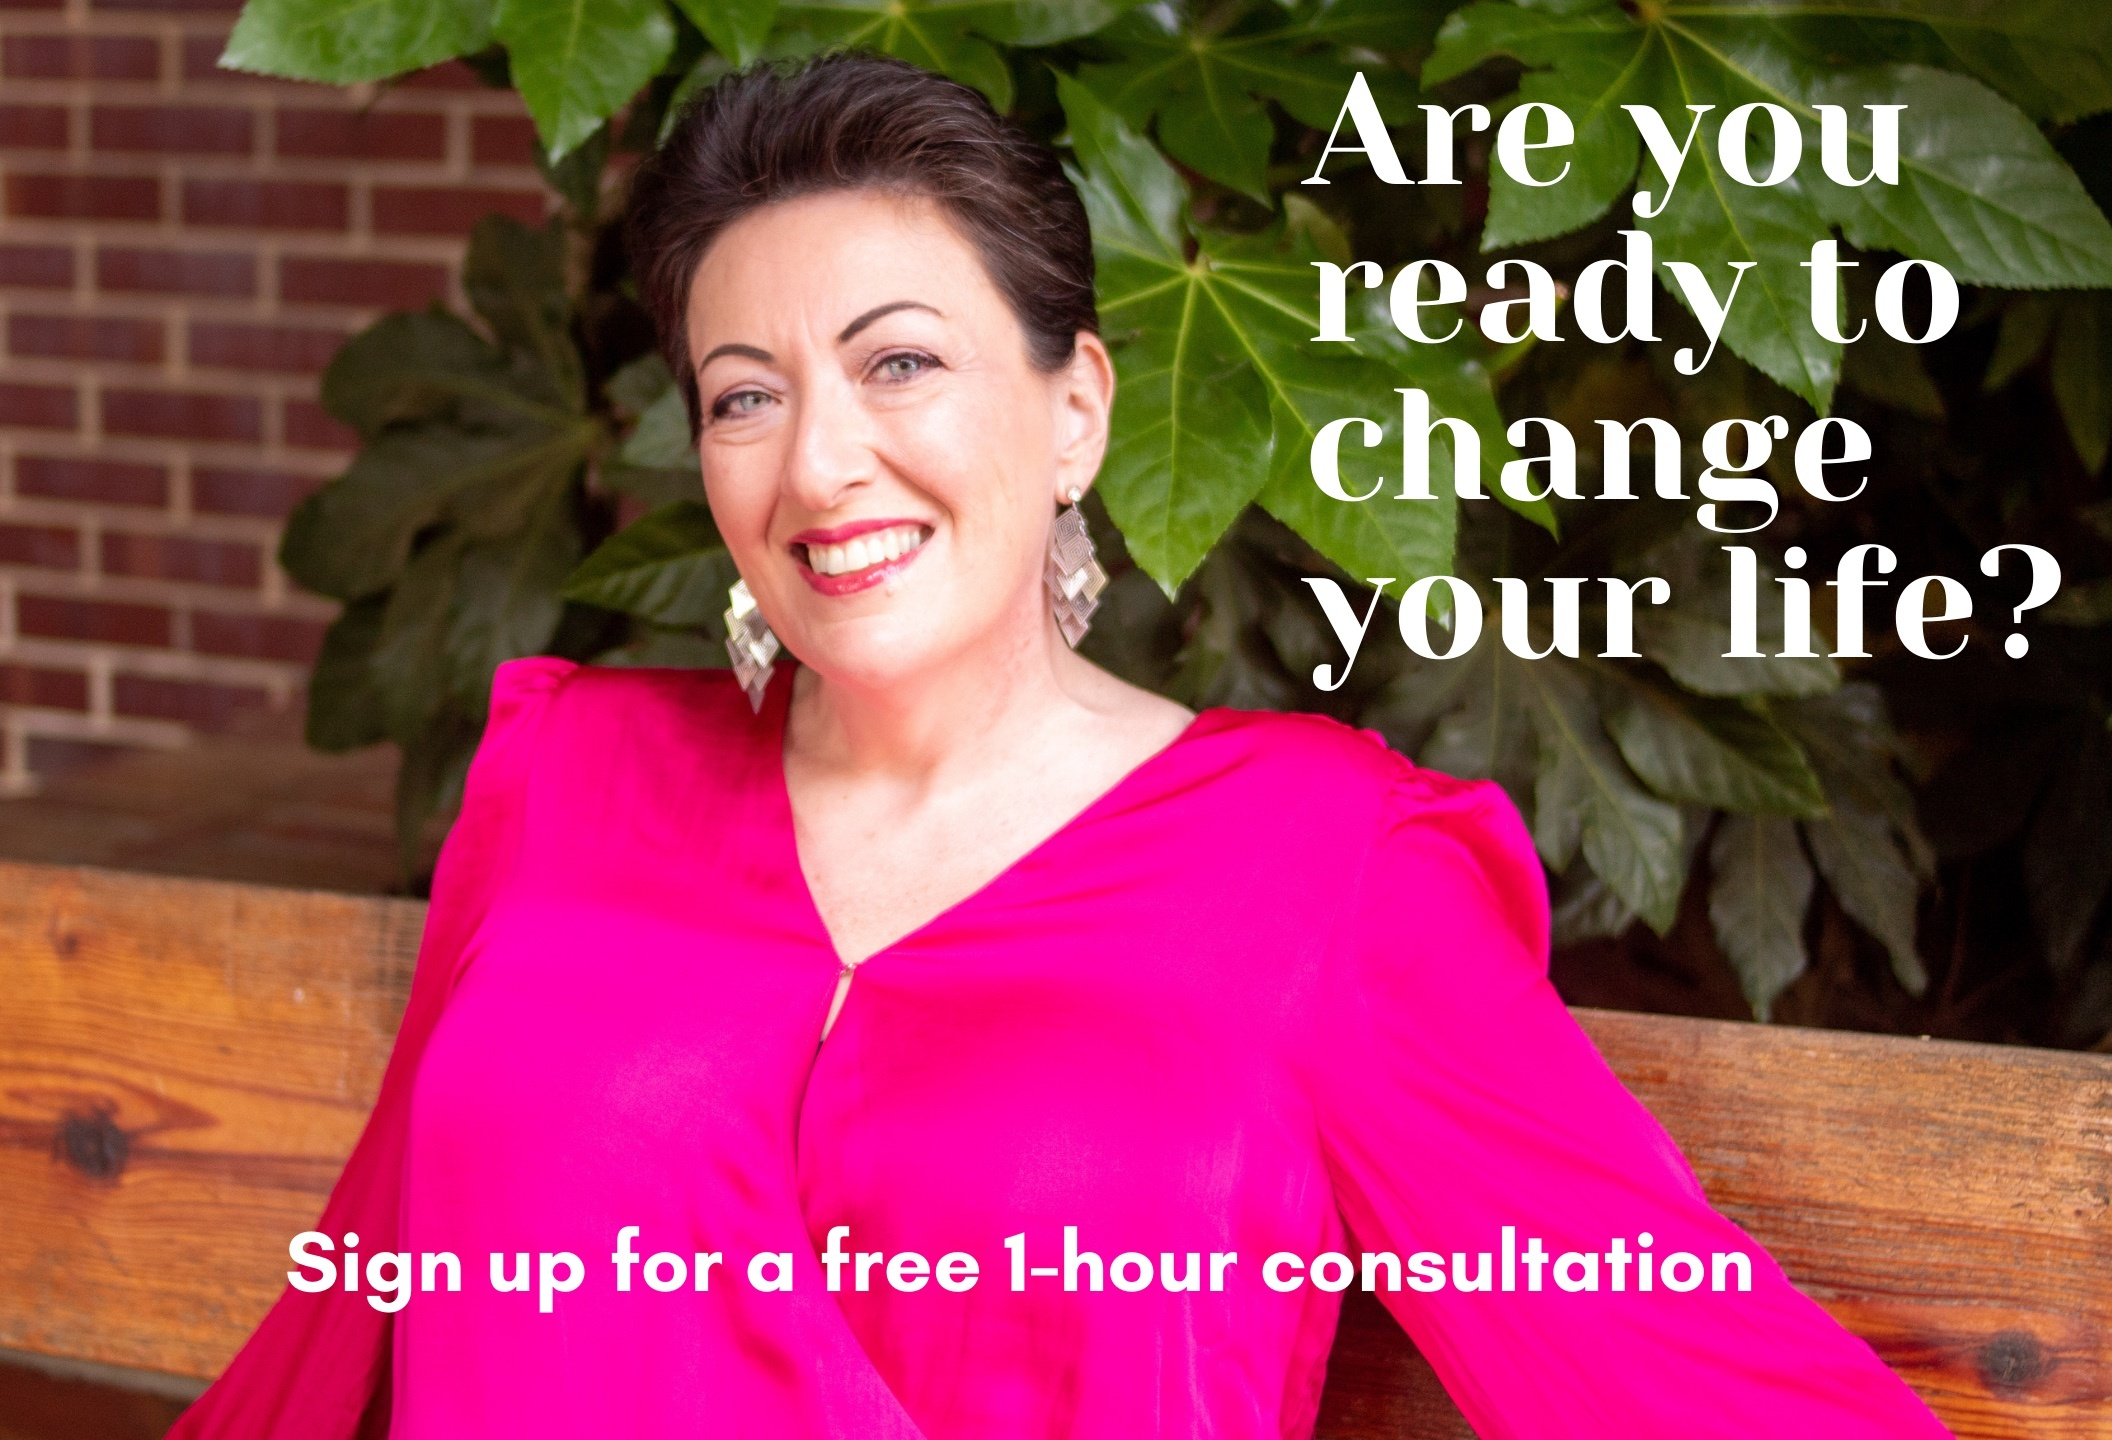 Are you ready to change your life? Sign up for a free 1-hour consultation (click here)